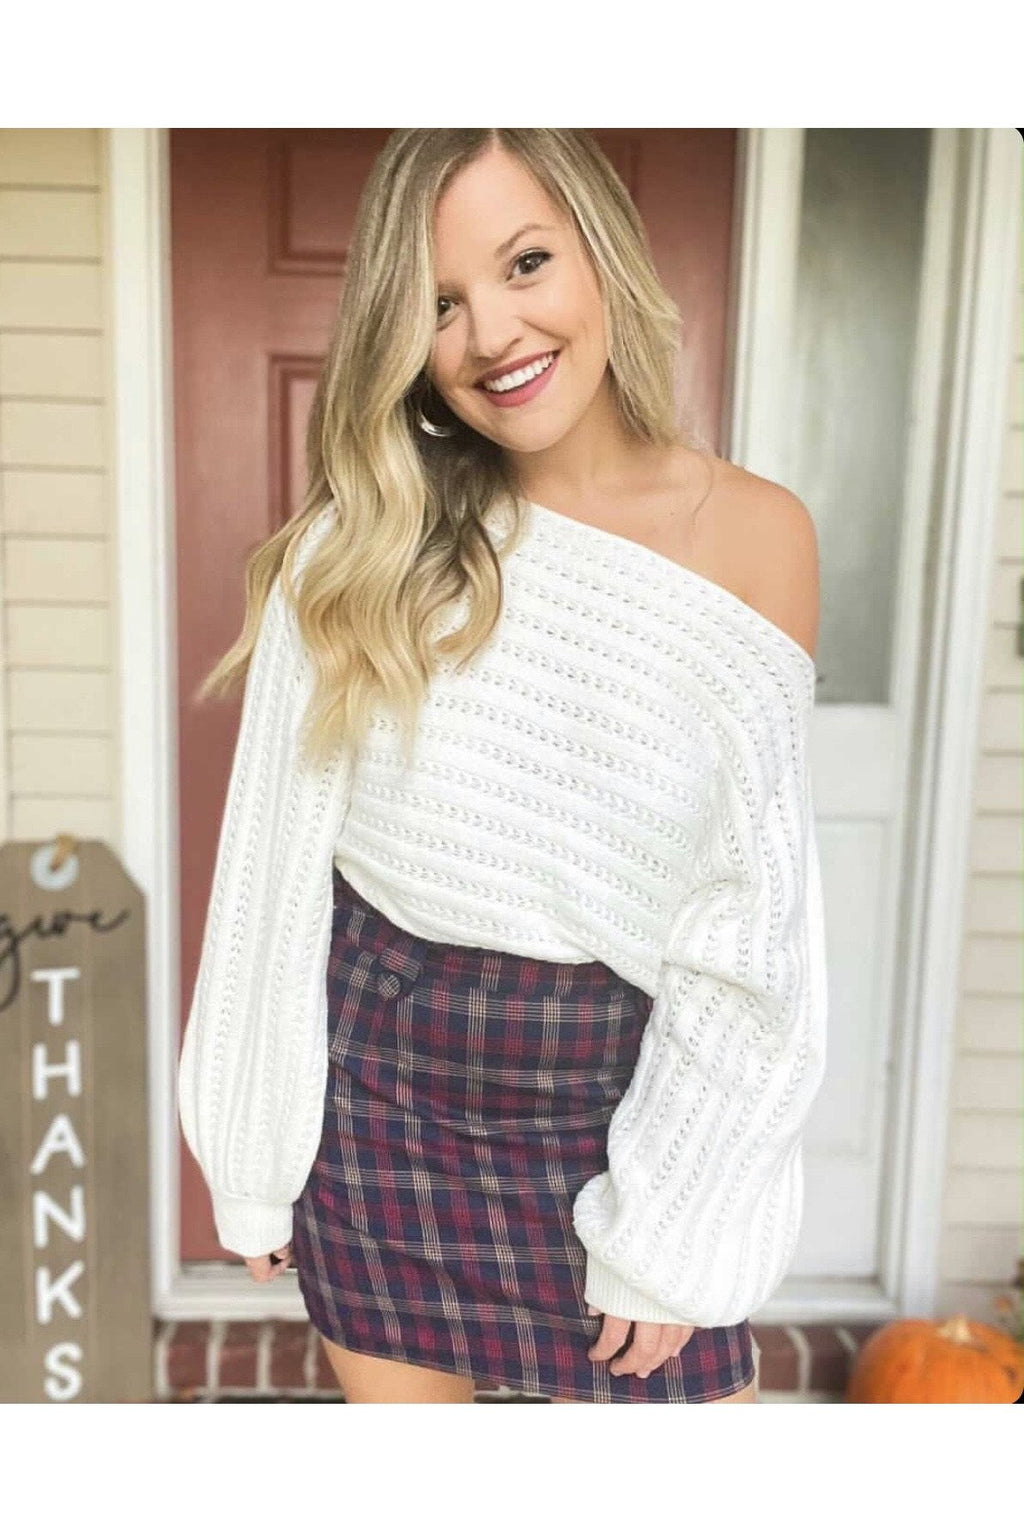 Blake Plaid Skirt